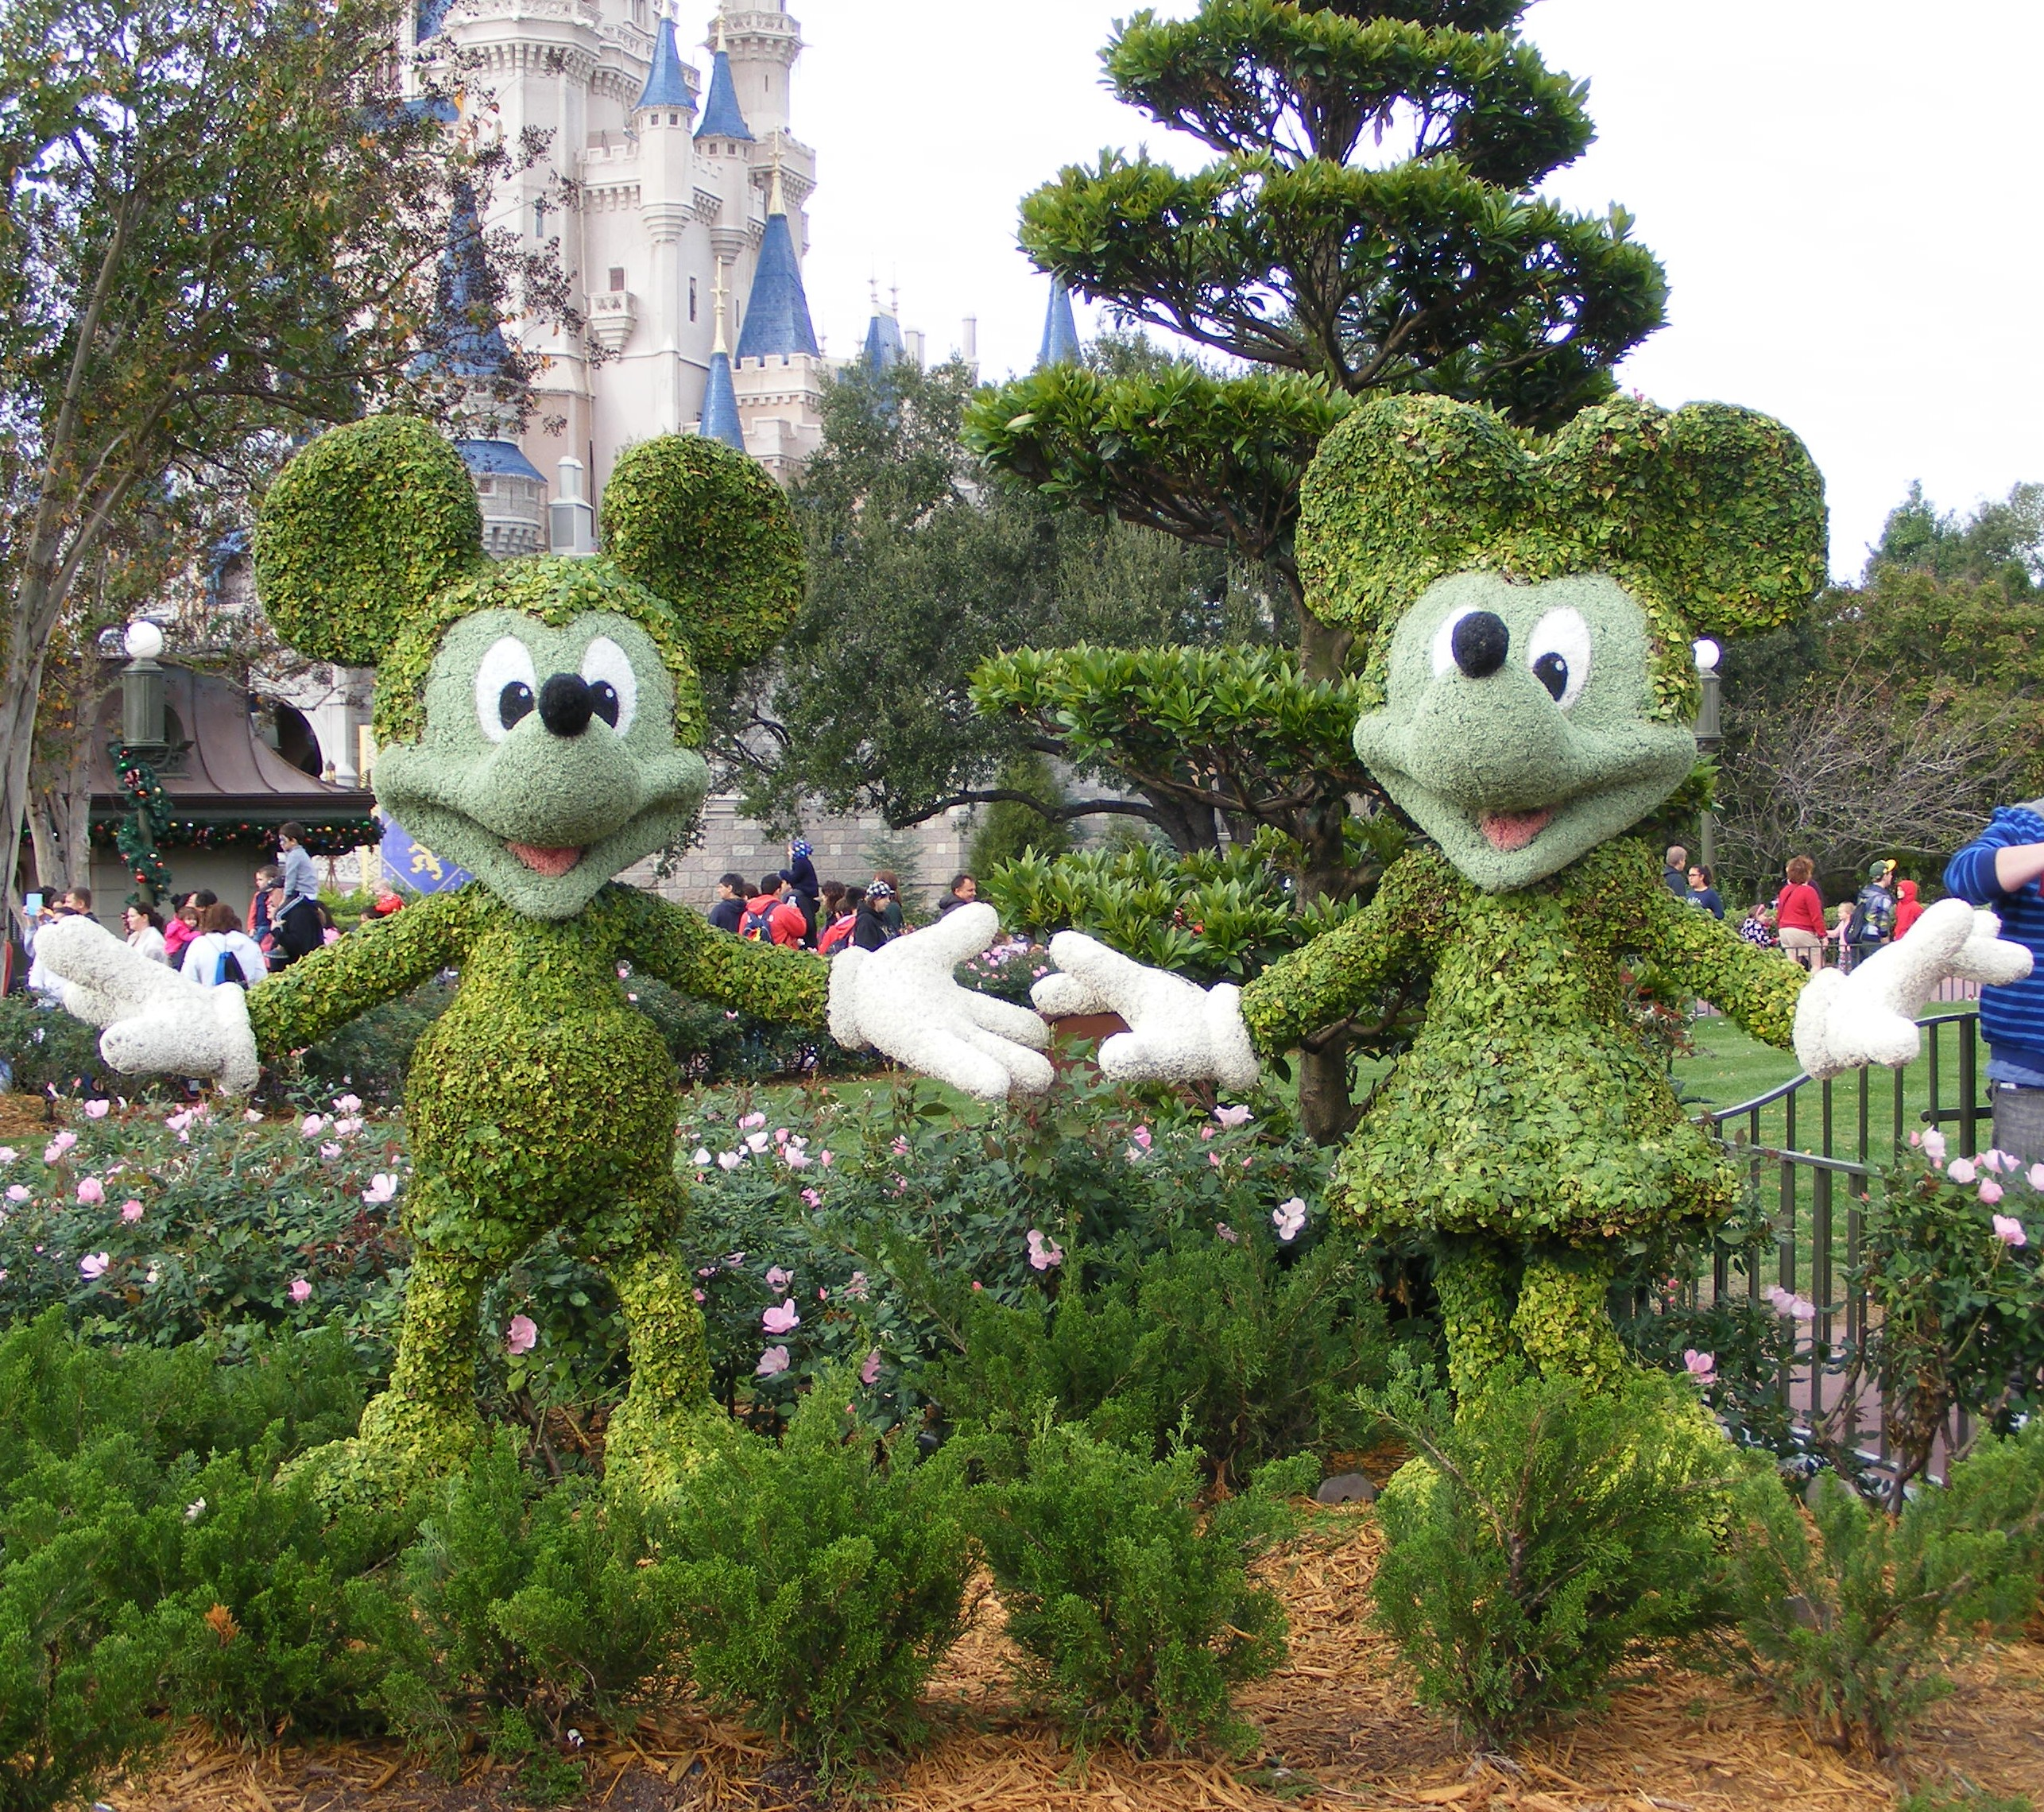 Lovely Disney Topiary Part - 3: Wouldnu0027t It Be Great To Have A Disney Topiary In Your Homeu0027s Landscaping?